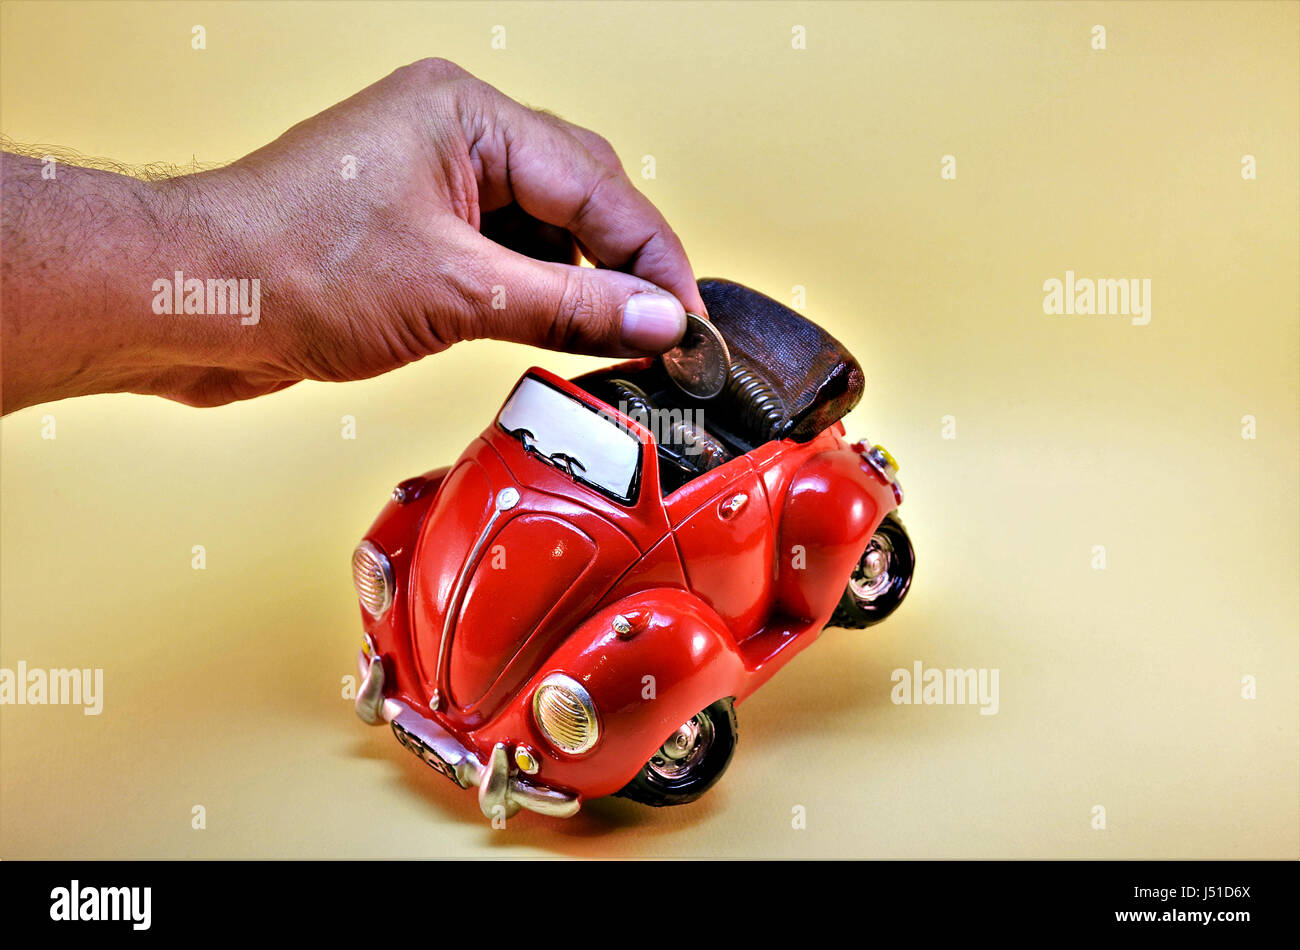 Coin bank. Man putting coin into coin bank. Coin bank child in car shape symbolizing the savings to buy a new car. - Stock Image